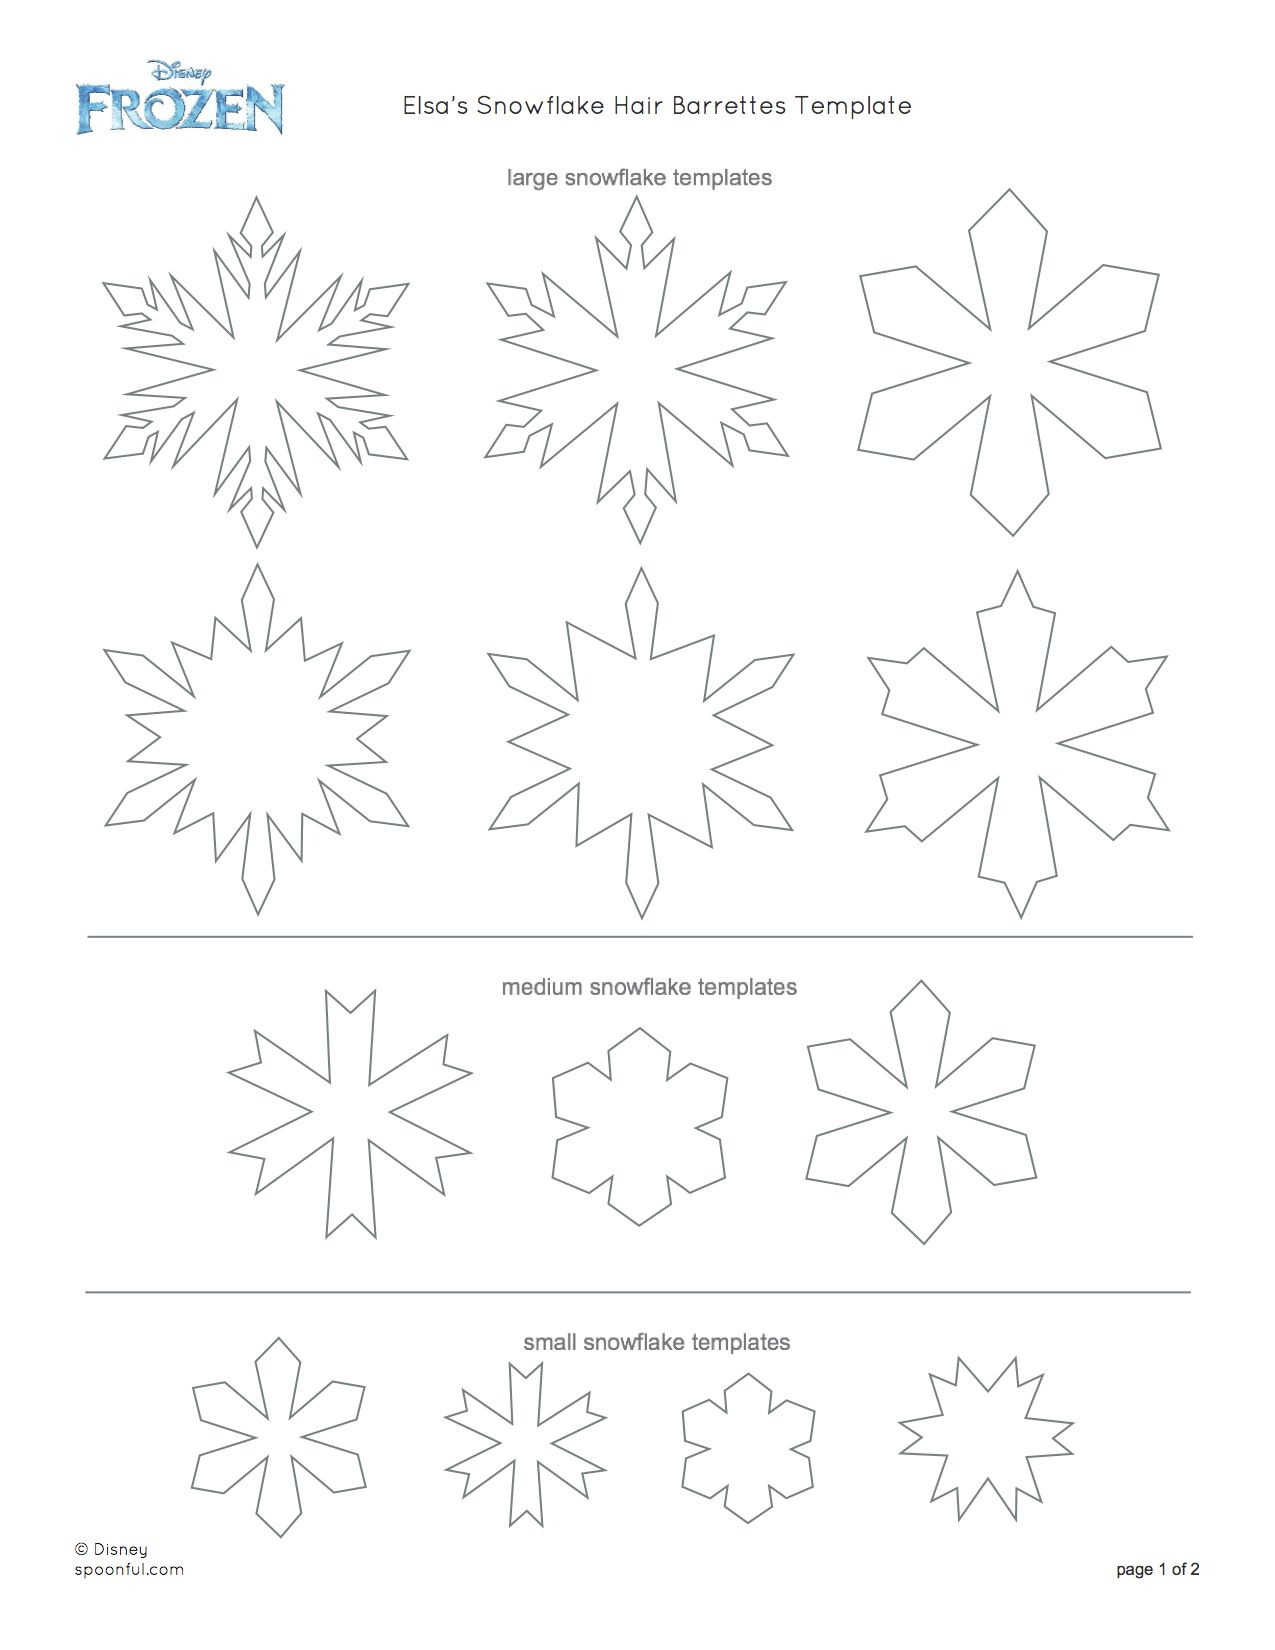 Disney-Frozen-Elsa-Snowflake-Hair-Barrettes-Printable-0813 - Disney - Free Printable Snowflake Patterns